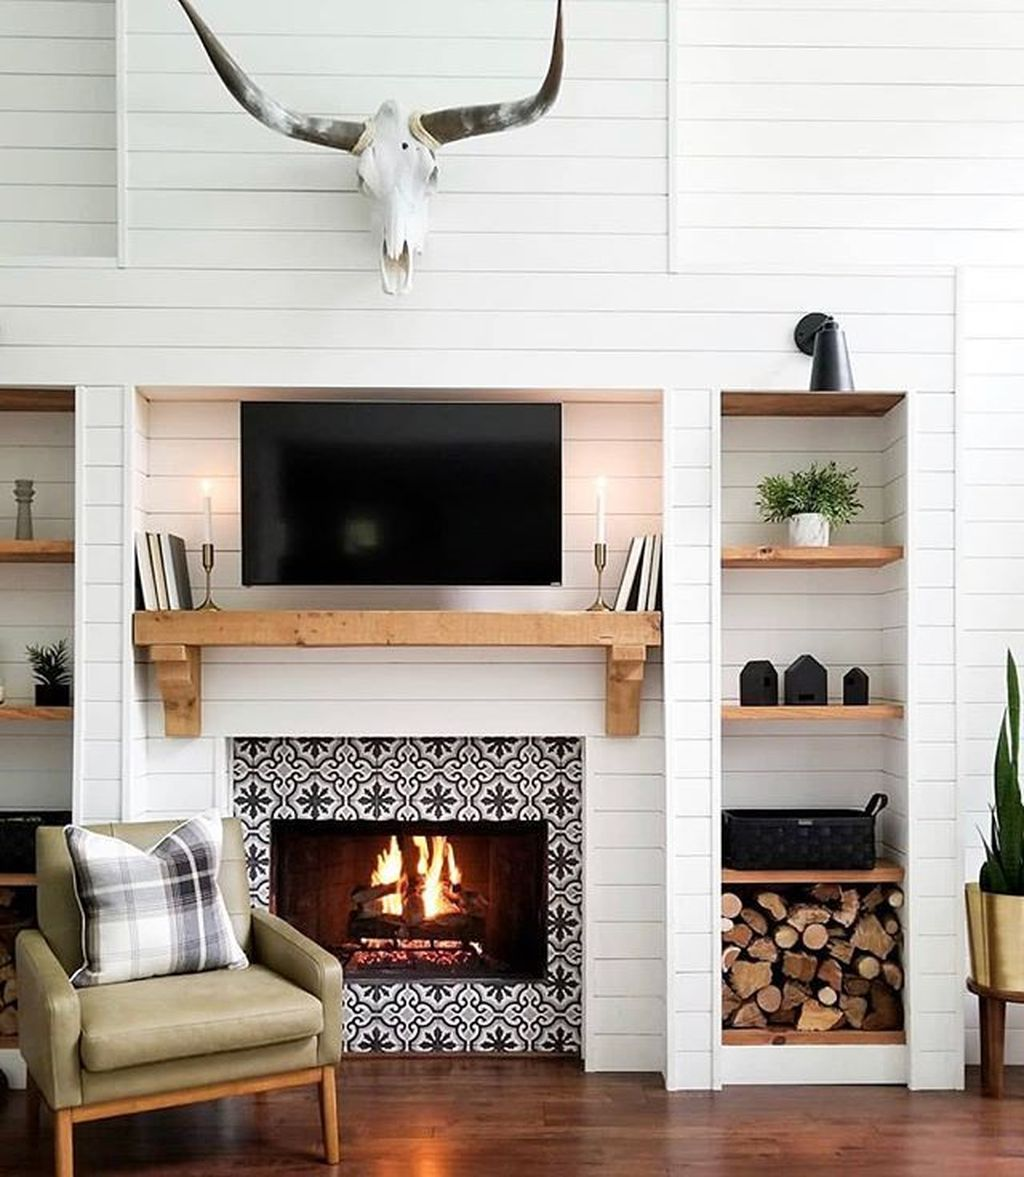 Popular Modern Farmhouse Living Room Decor Ideas 27